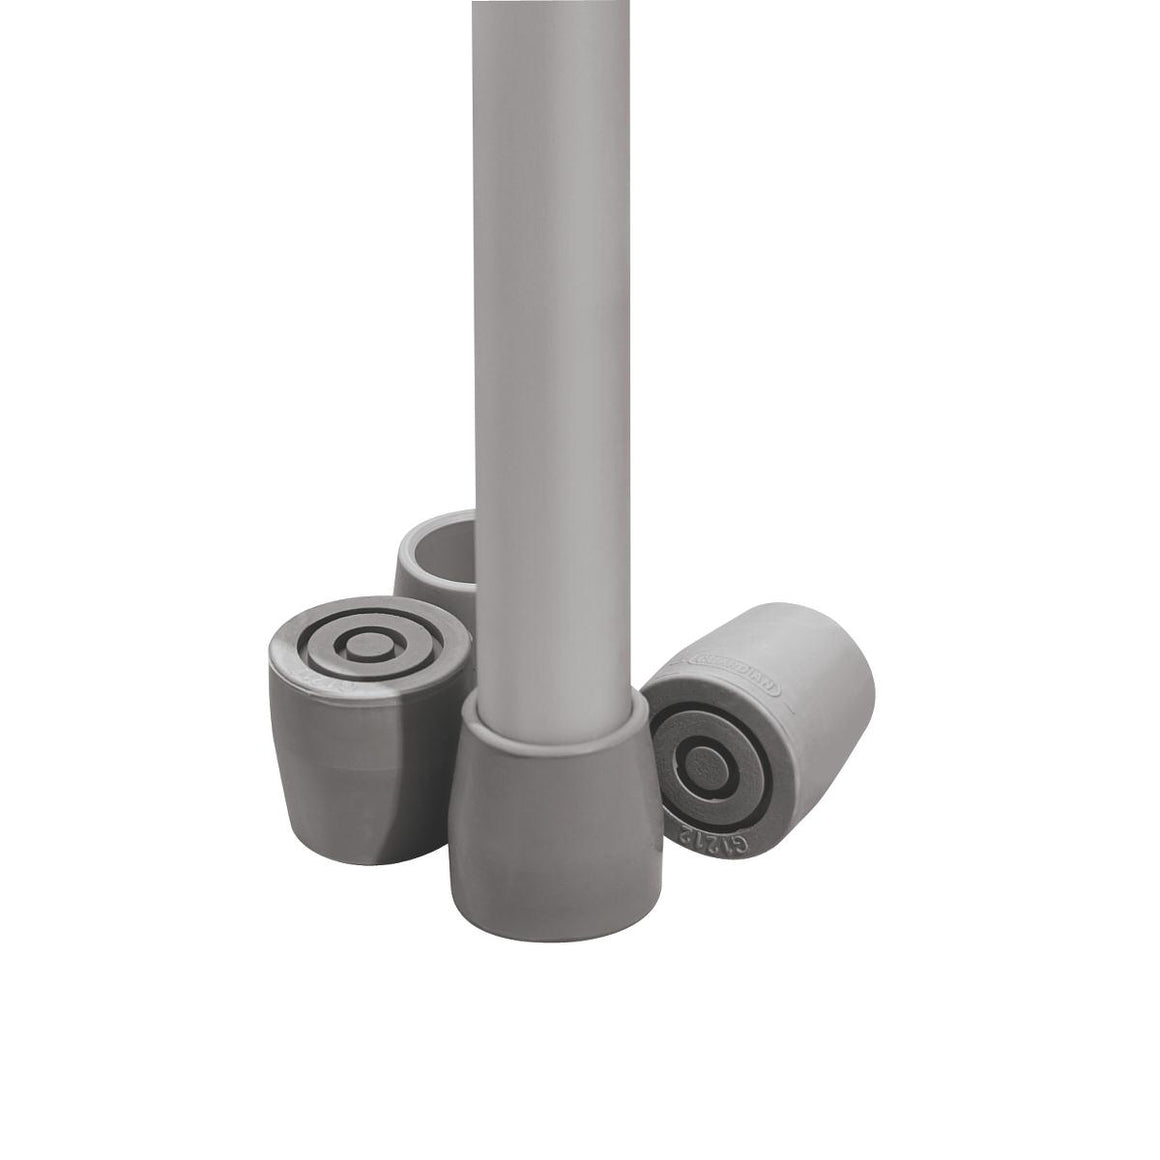 "1"" Guardian Utility Tips,Gray, Case of 8 Set"